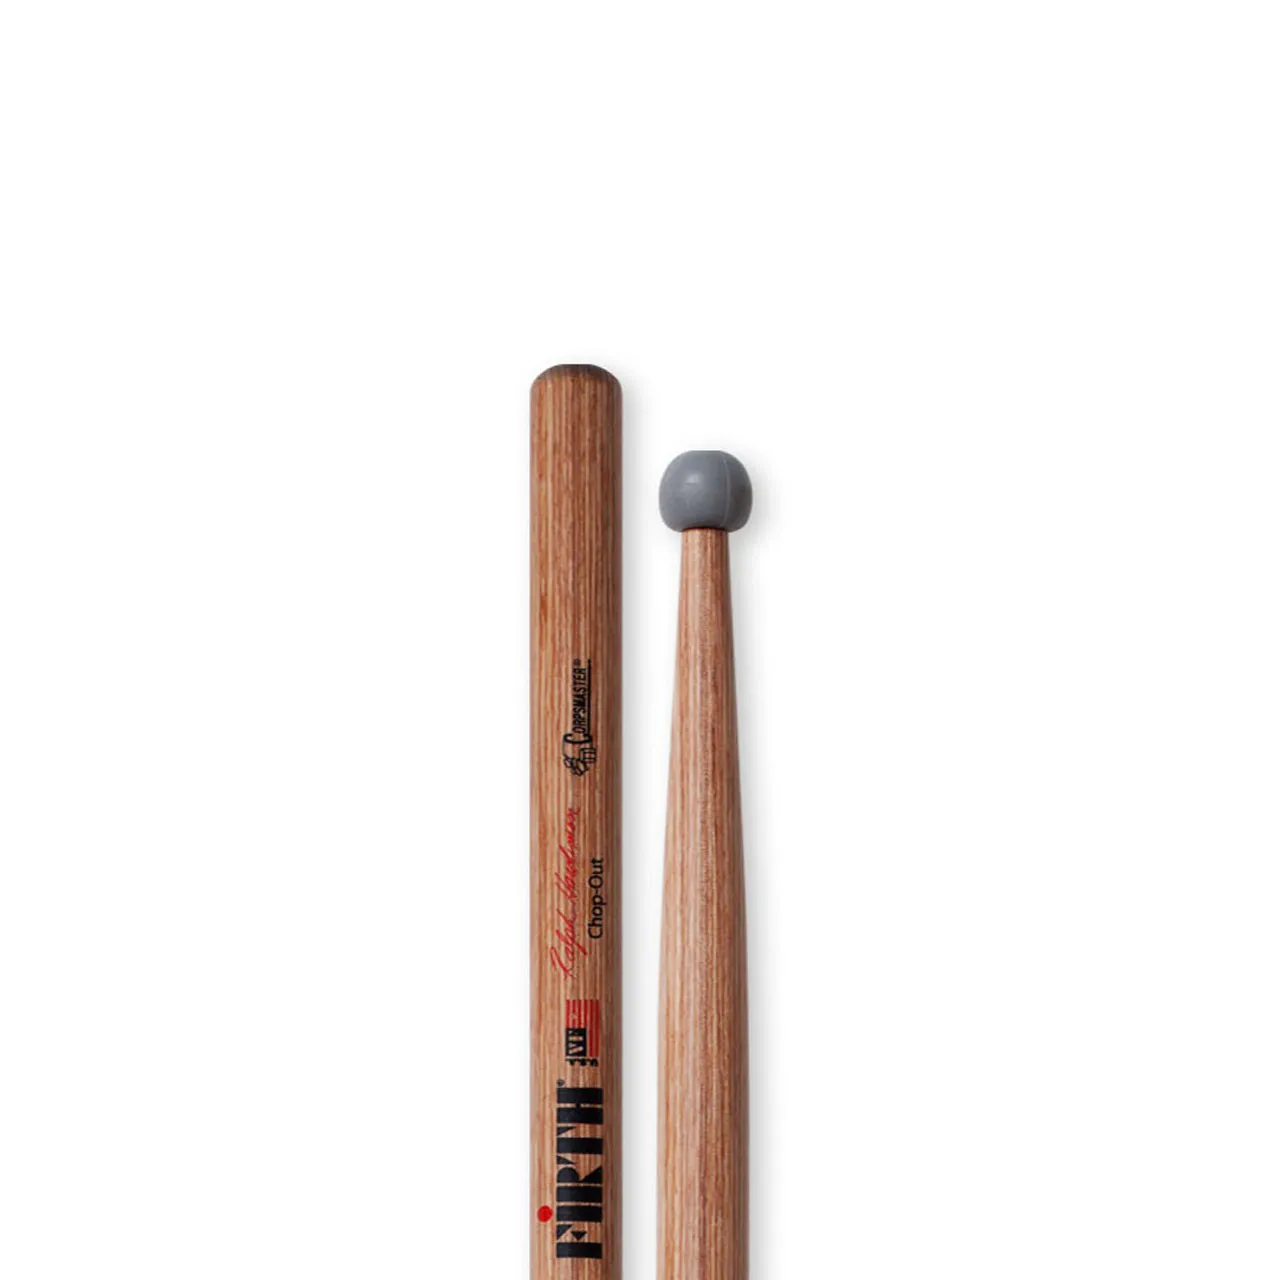 Baqueta Corpsmaster Ms6 Chop-out Ponta De Borracha P/caixa Marcial Ms6co Vic Firth